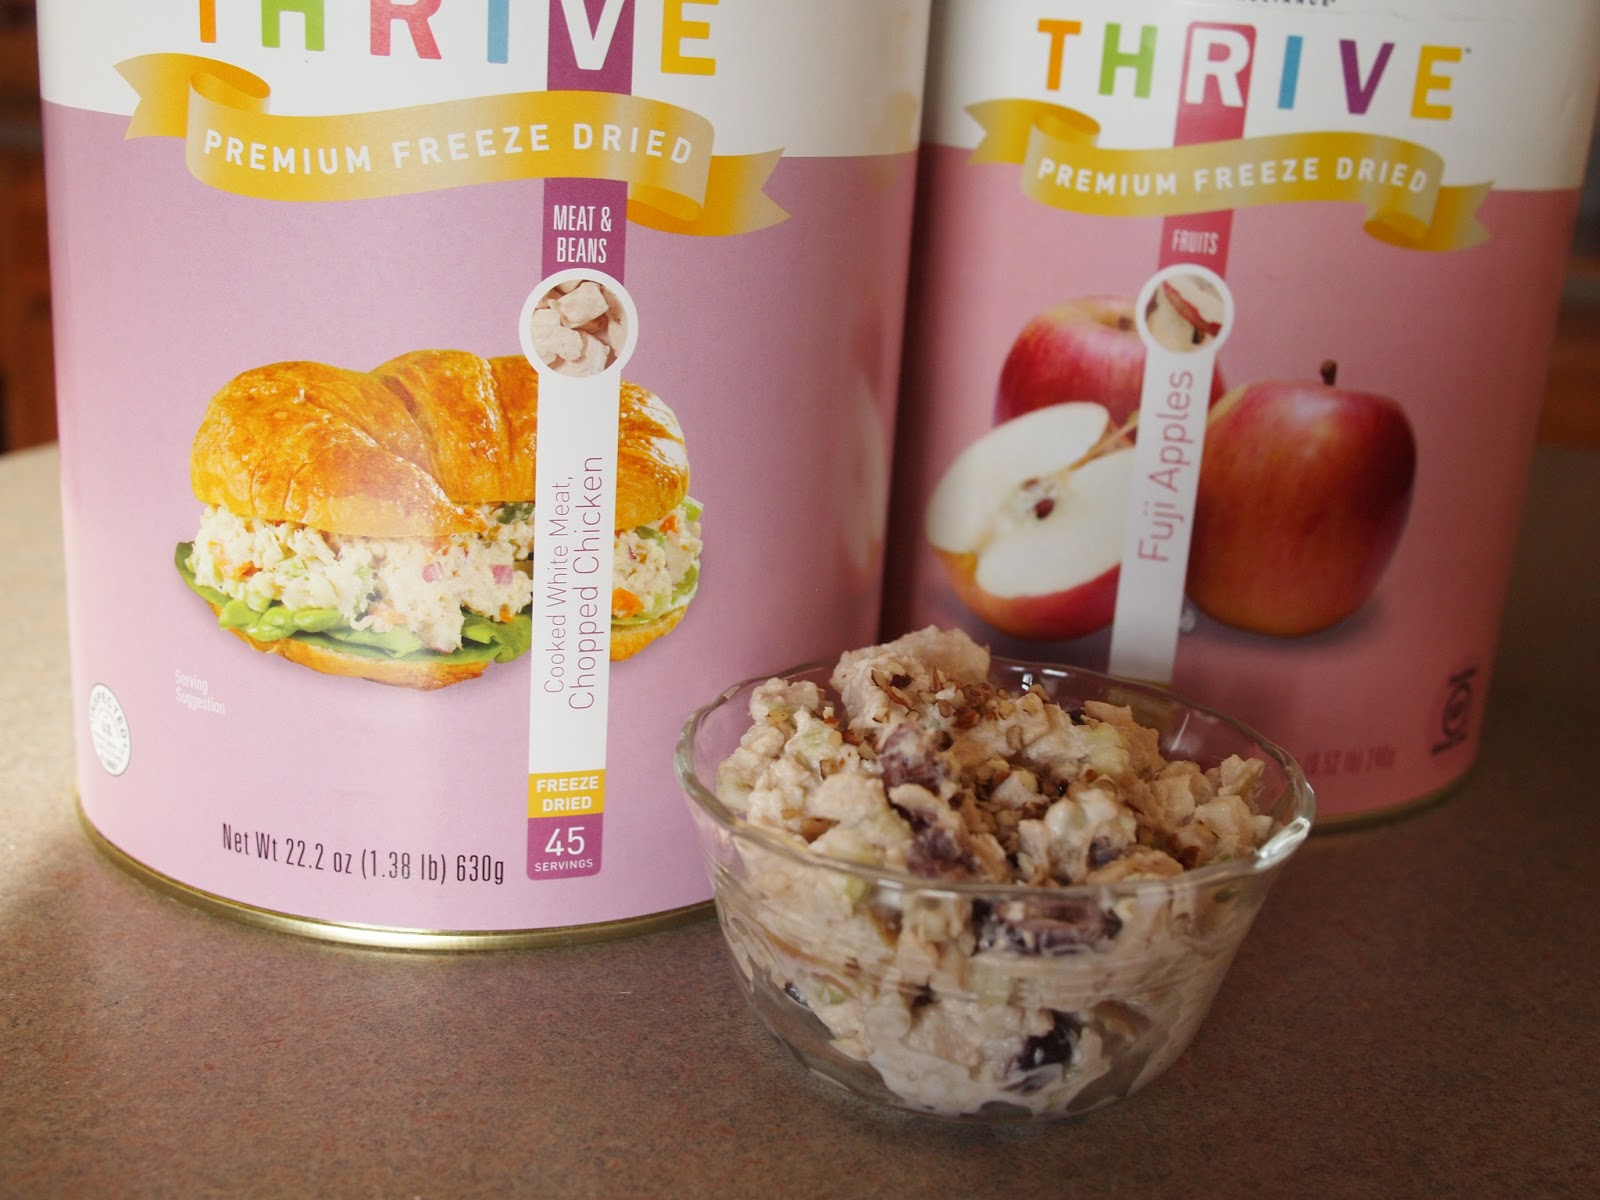 Freeze dried food is good my favorite recipes pats thrive apple cranberry chicken salad with toasted pecans forumfinder Image collections